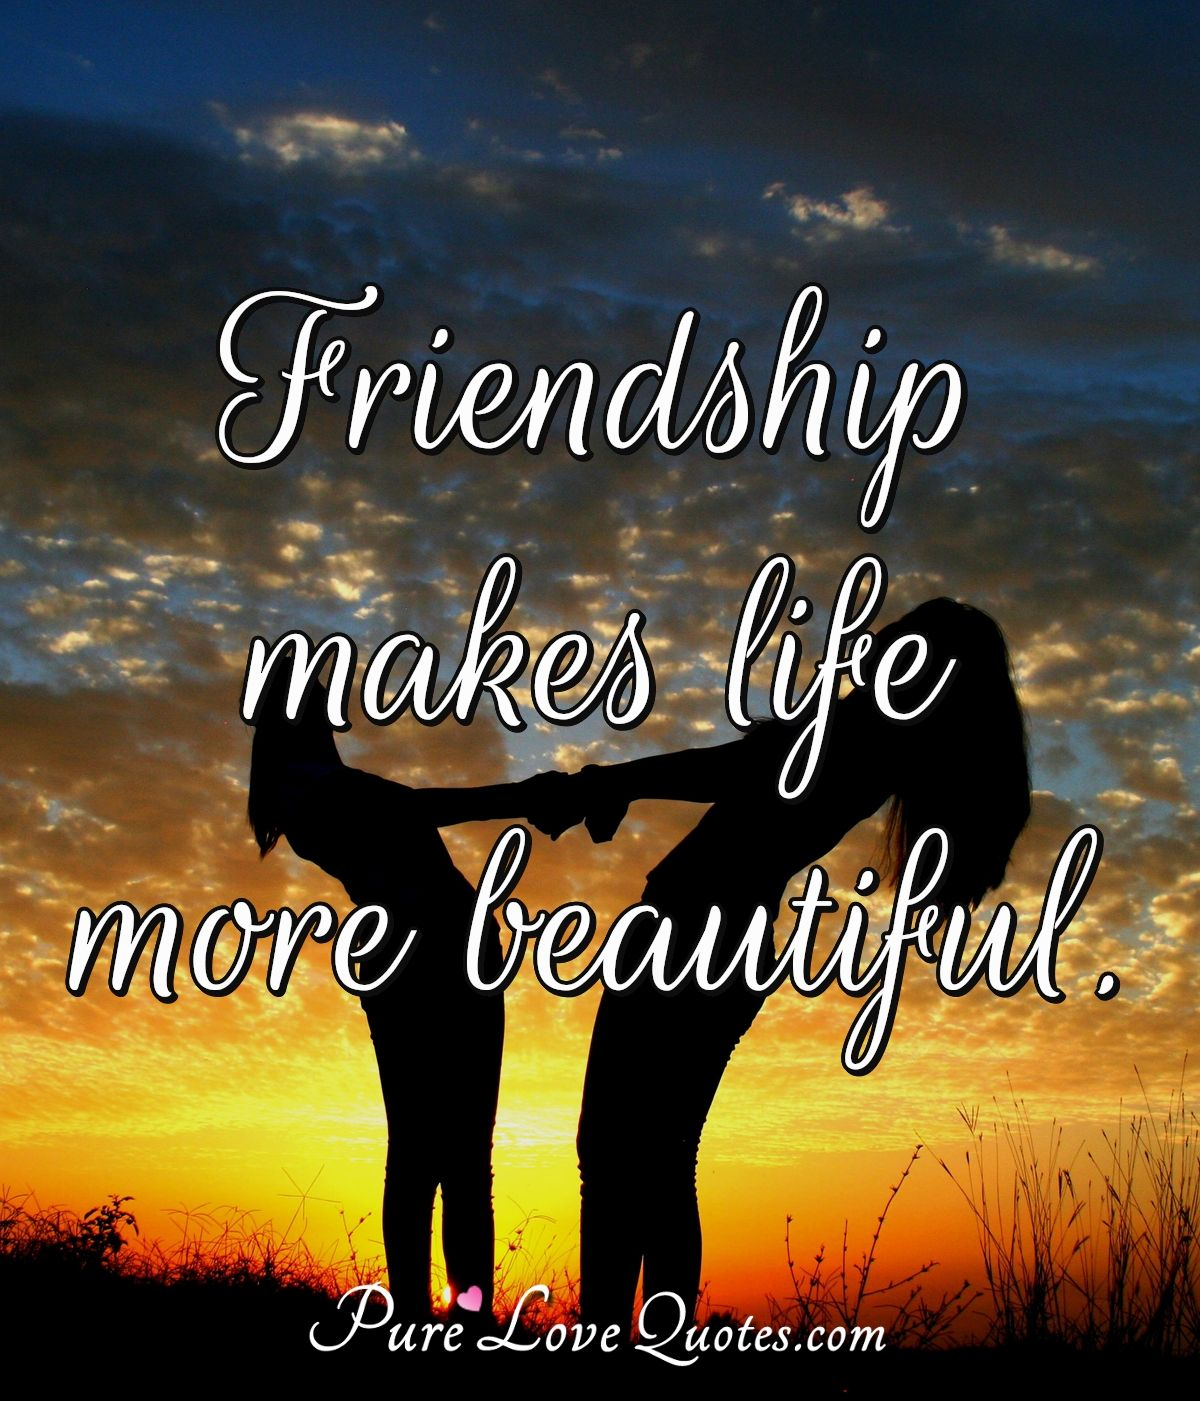 Friendship Makes Life More Beautiful Purelovequotes